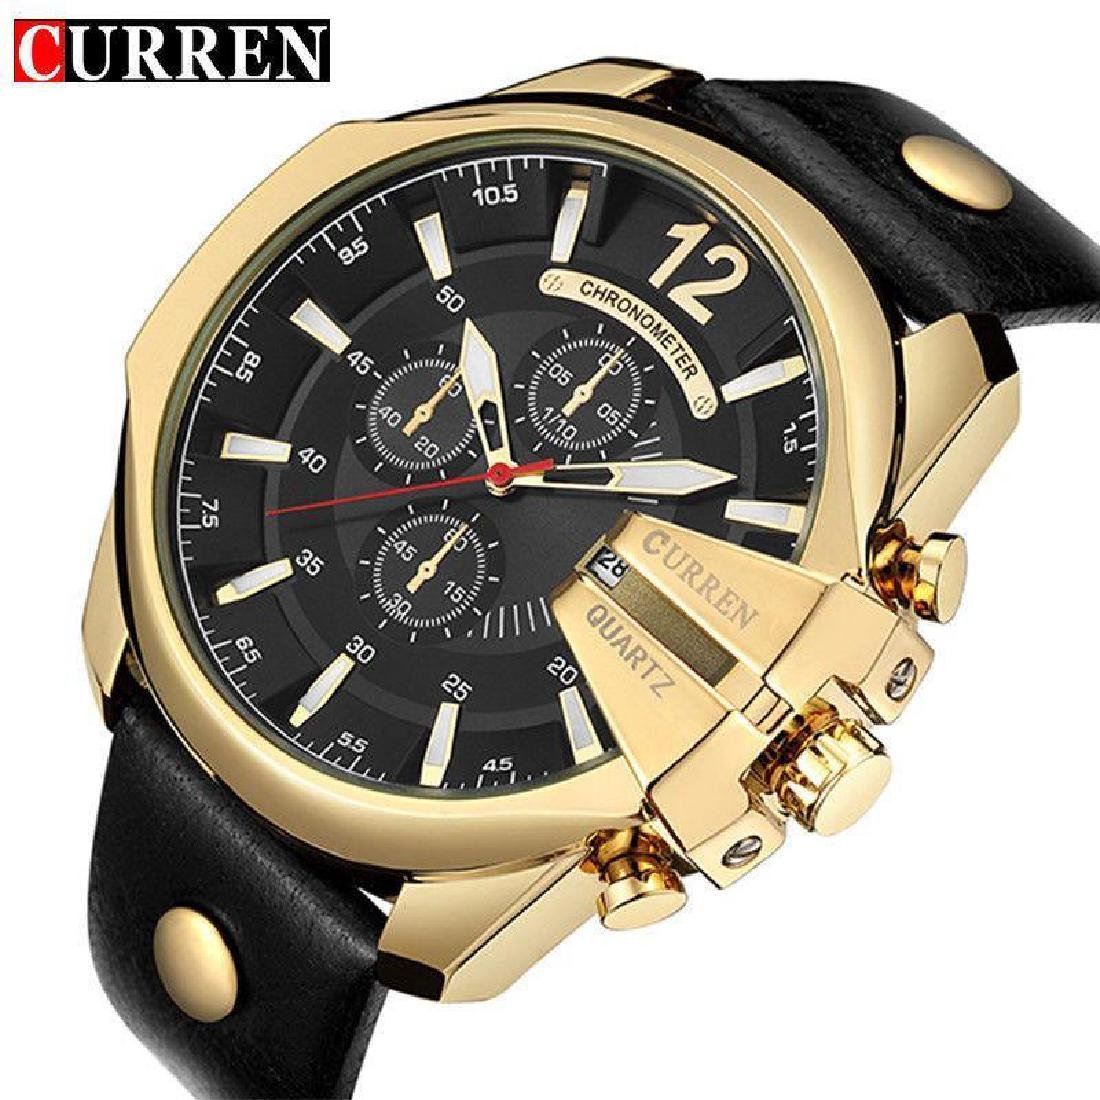 Curren Men39s Sports Quartz Watch Men Top Brand Luxury